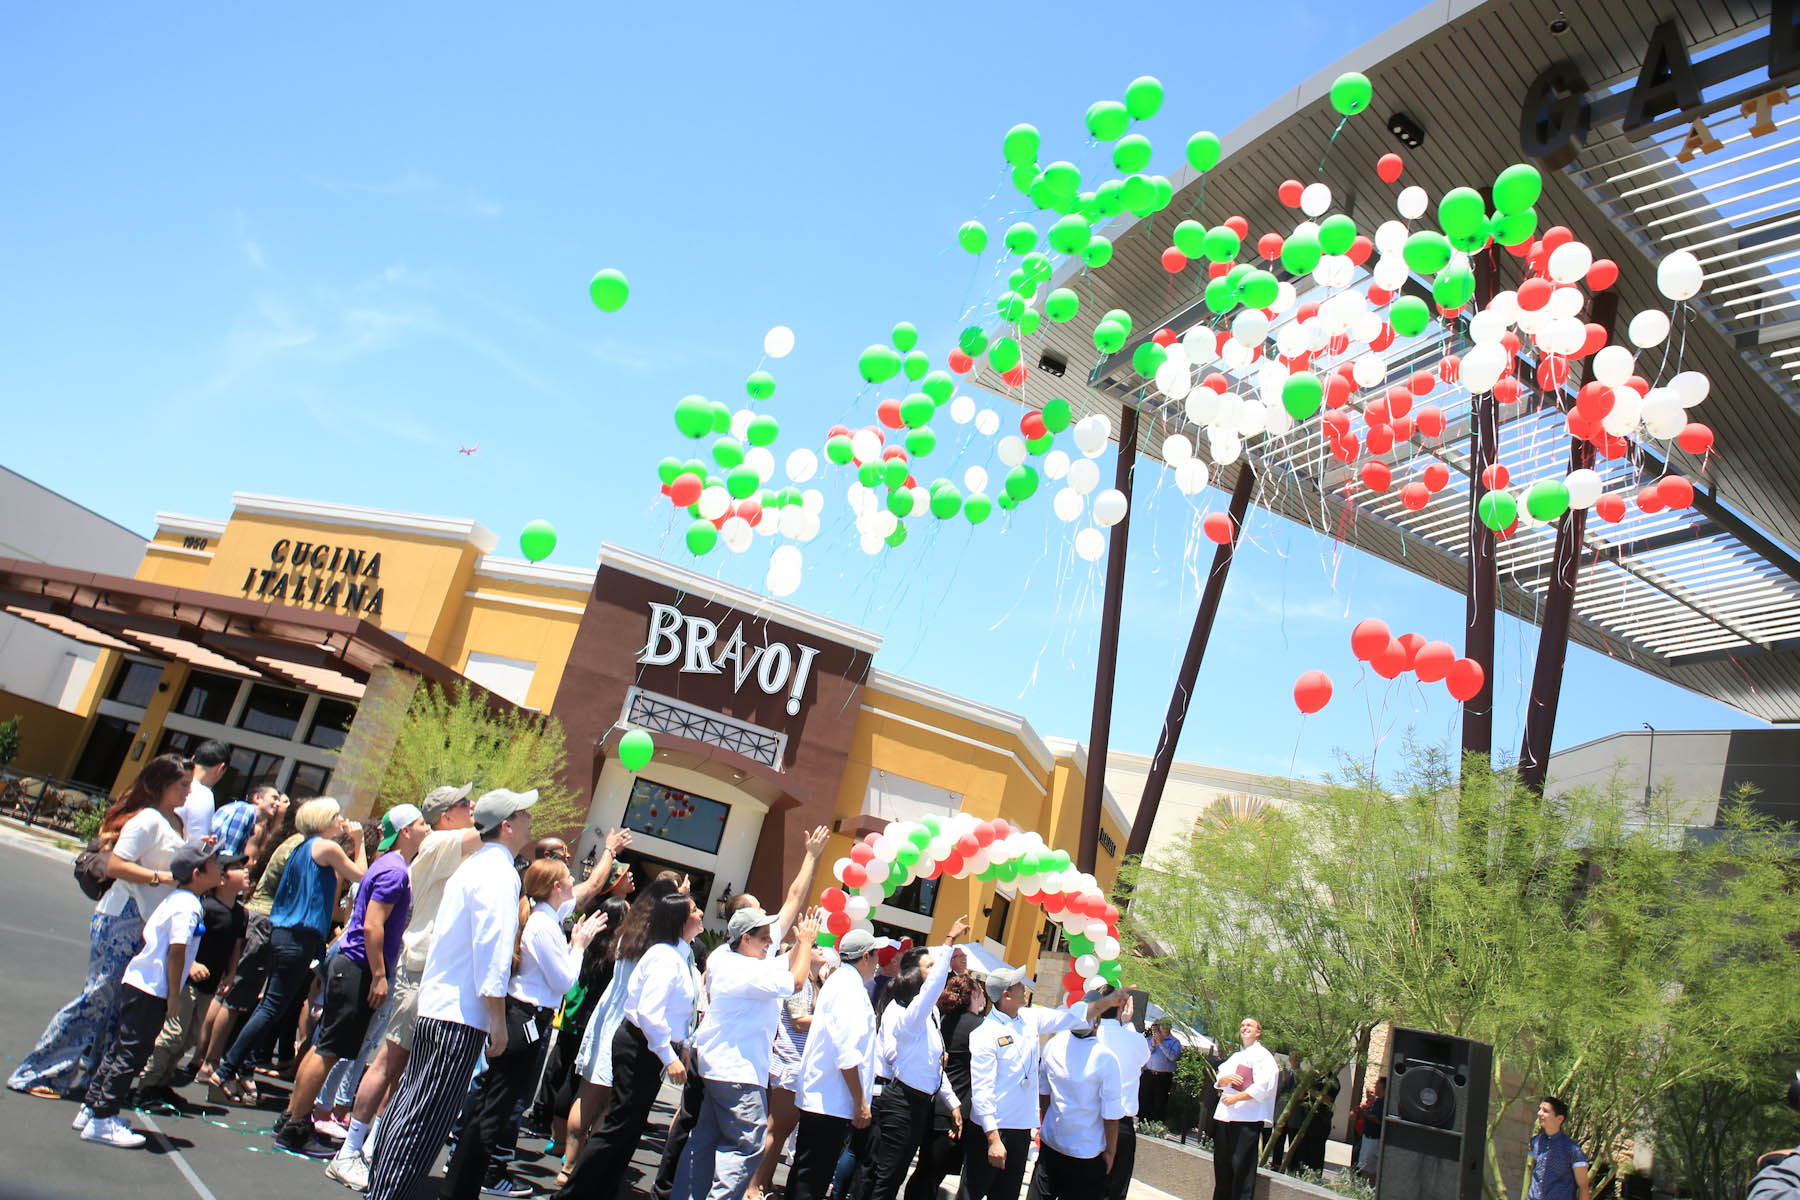 Last year's Bravo! Cucina Italiana grand opening at Galleria at Sunset